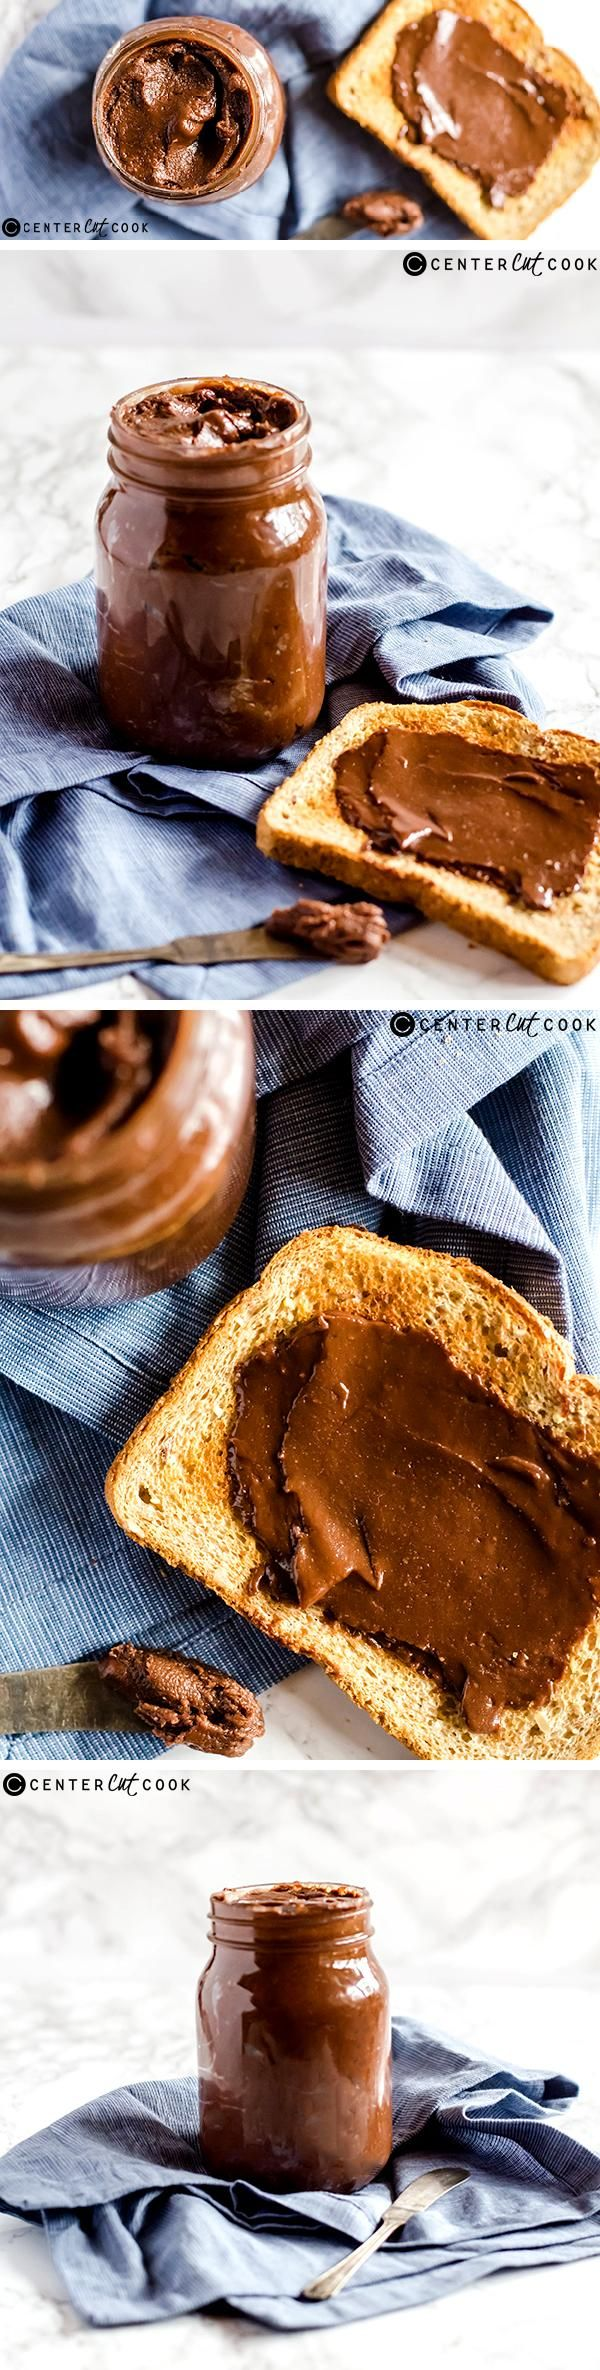 It's easier and tastier than you think to MAKE your own HOMEMADE NUTELLA spread. You can whip up a batch of this irresistible chocolate hazelnut spread in minutes!